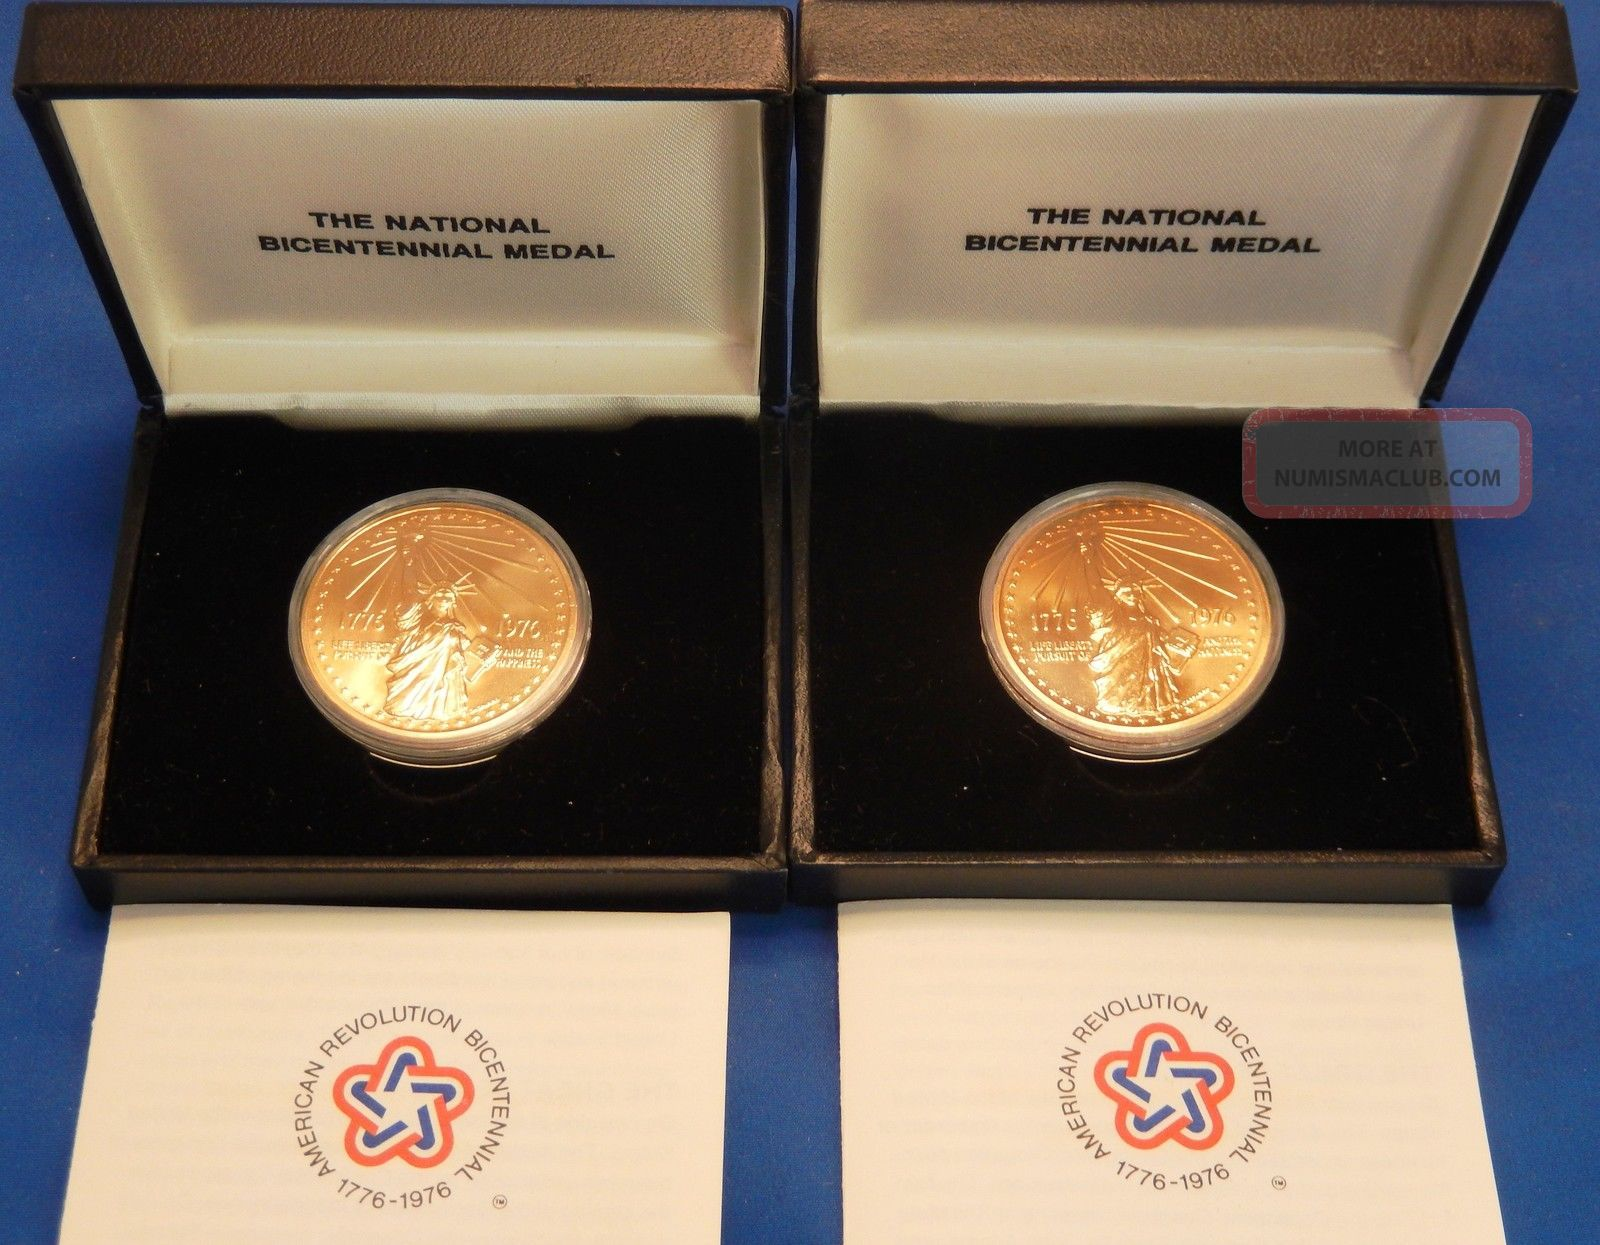 U.  S.  National Bicentennial Commemorative Medal - 1776 - 1976 Exonumia photo